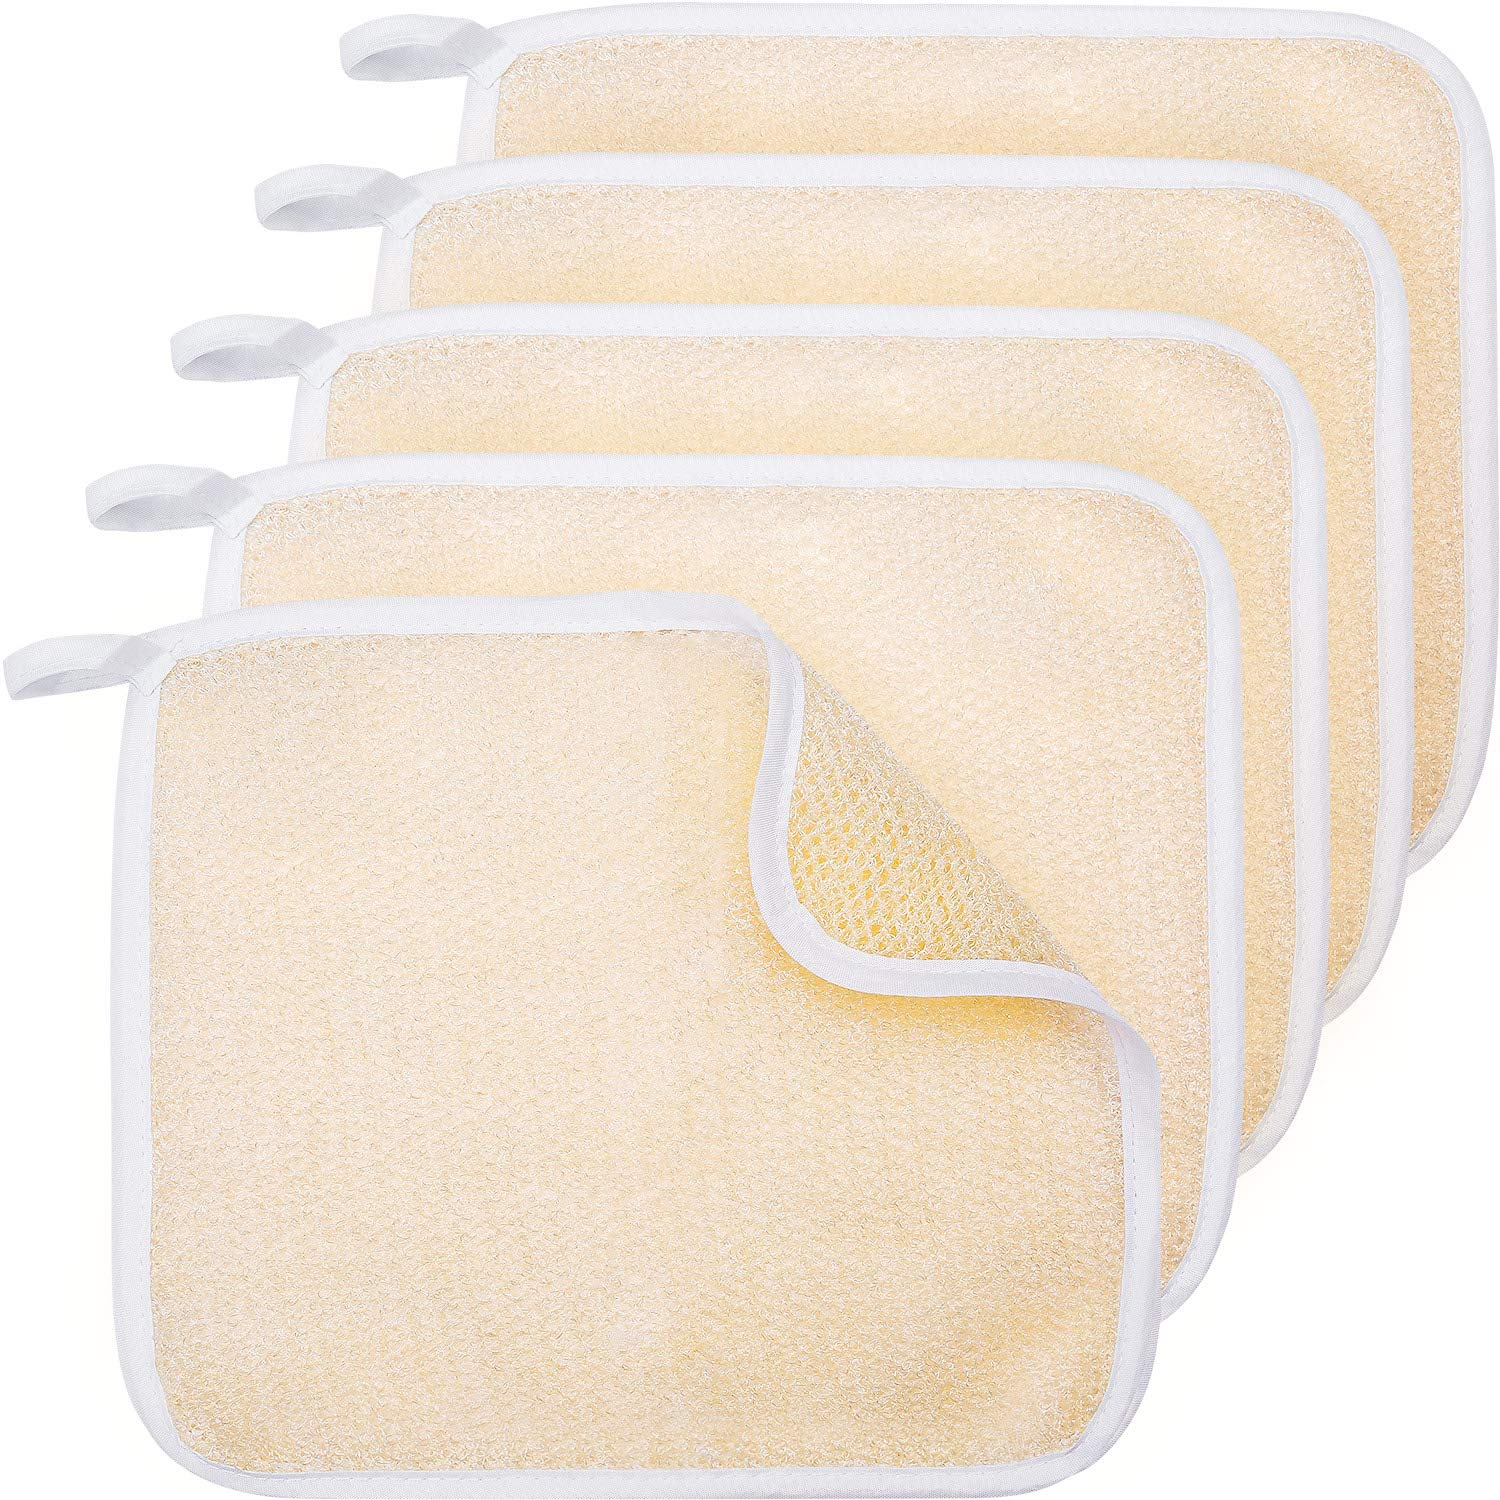 Tatuo 5 Pack Exfoliating Face and Body Wash Cloths Towel Soft Weave Bath Cloth Exfoliating Scrub Cloth Massage bath Cloth for Women and Man (5 Pack Two Sides Exfoliating Cloth) (Beige)